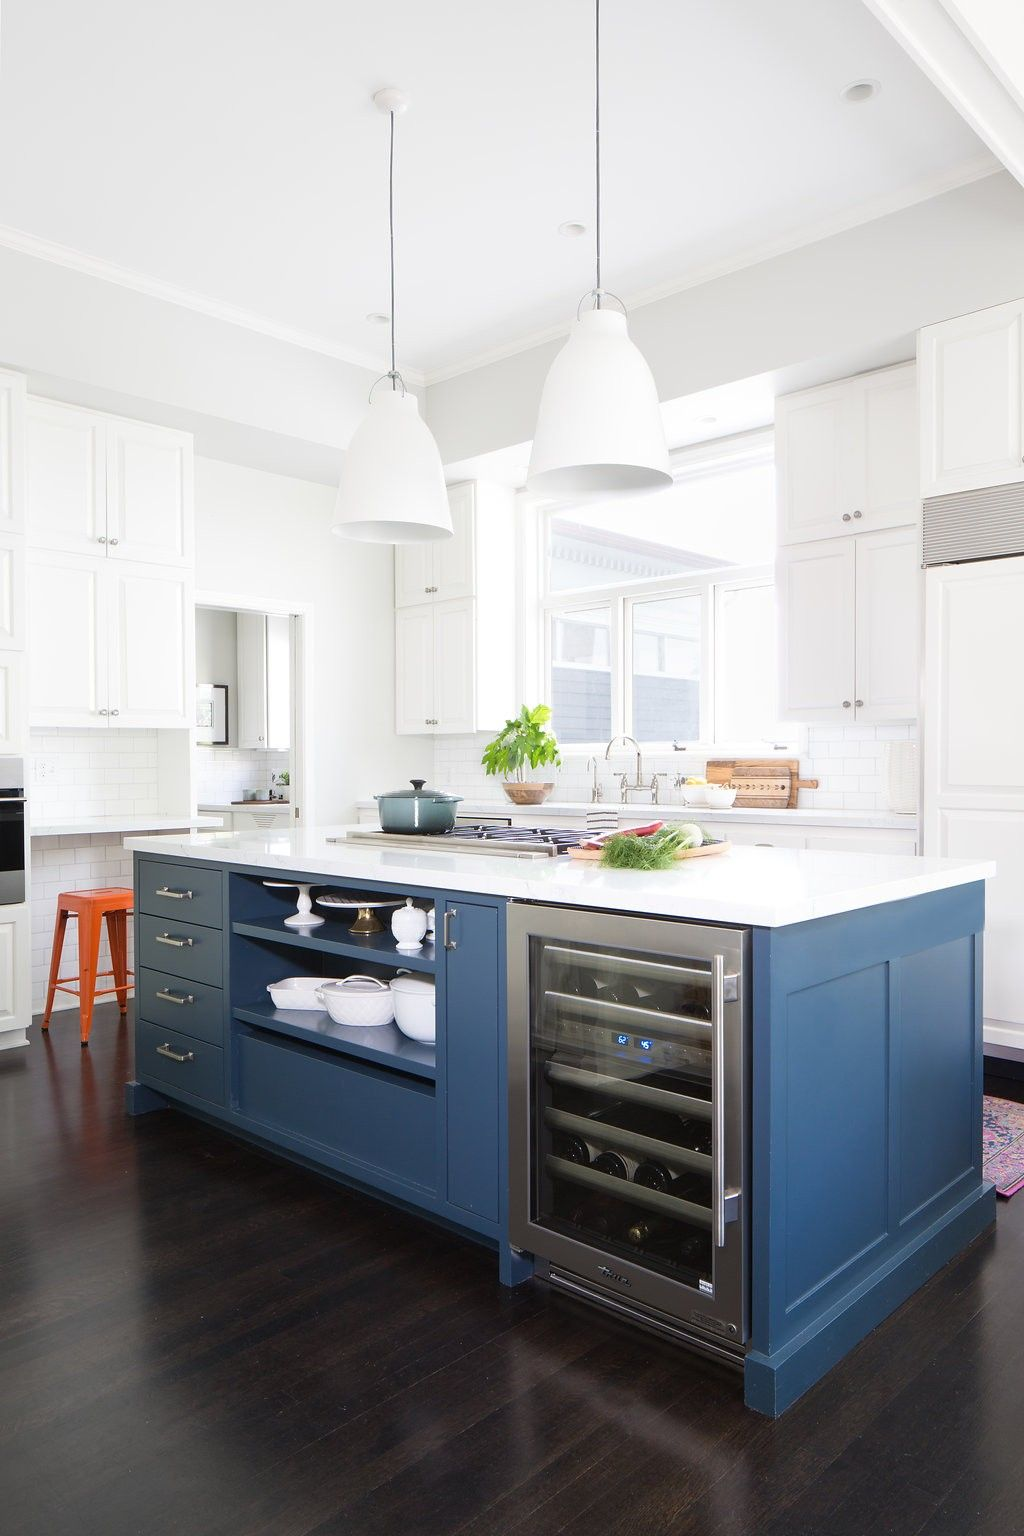 A Modern Leaning Kitchen Island Painted A Deep Blue In A Traditional Kitchen  Designed By Distinctive Kitchens Seattle. Photo By Wynne Earle Photography